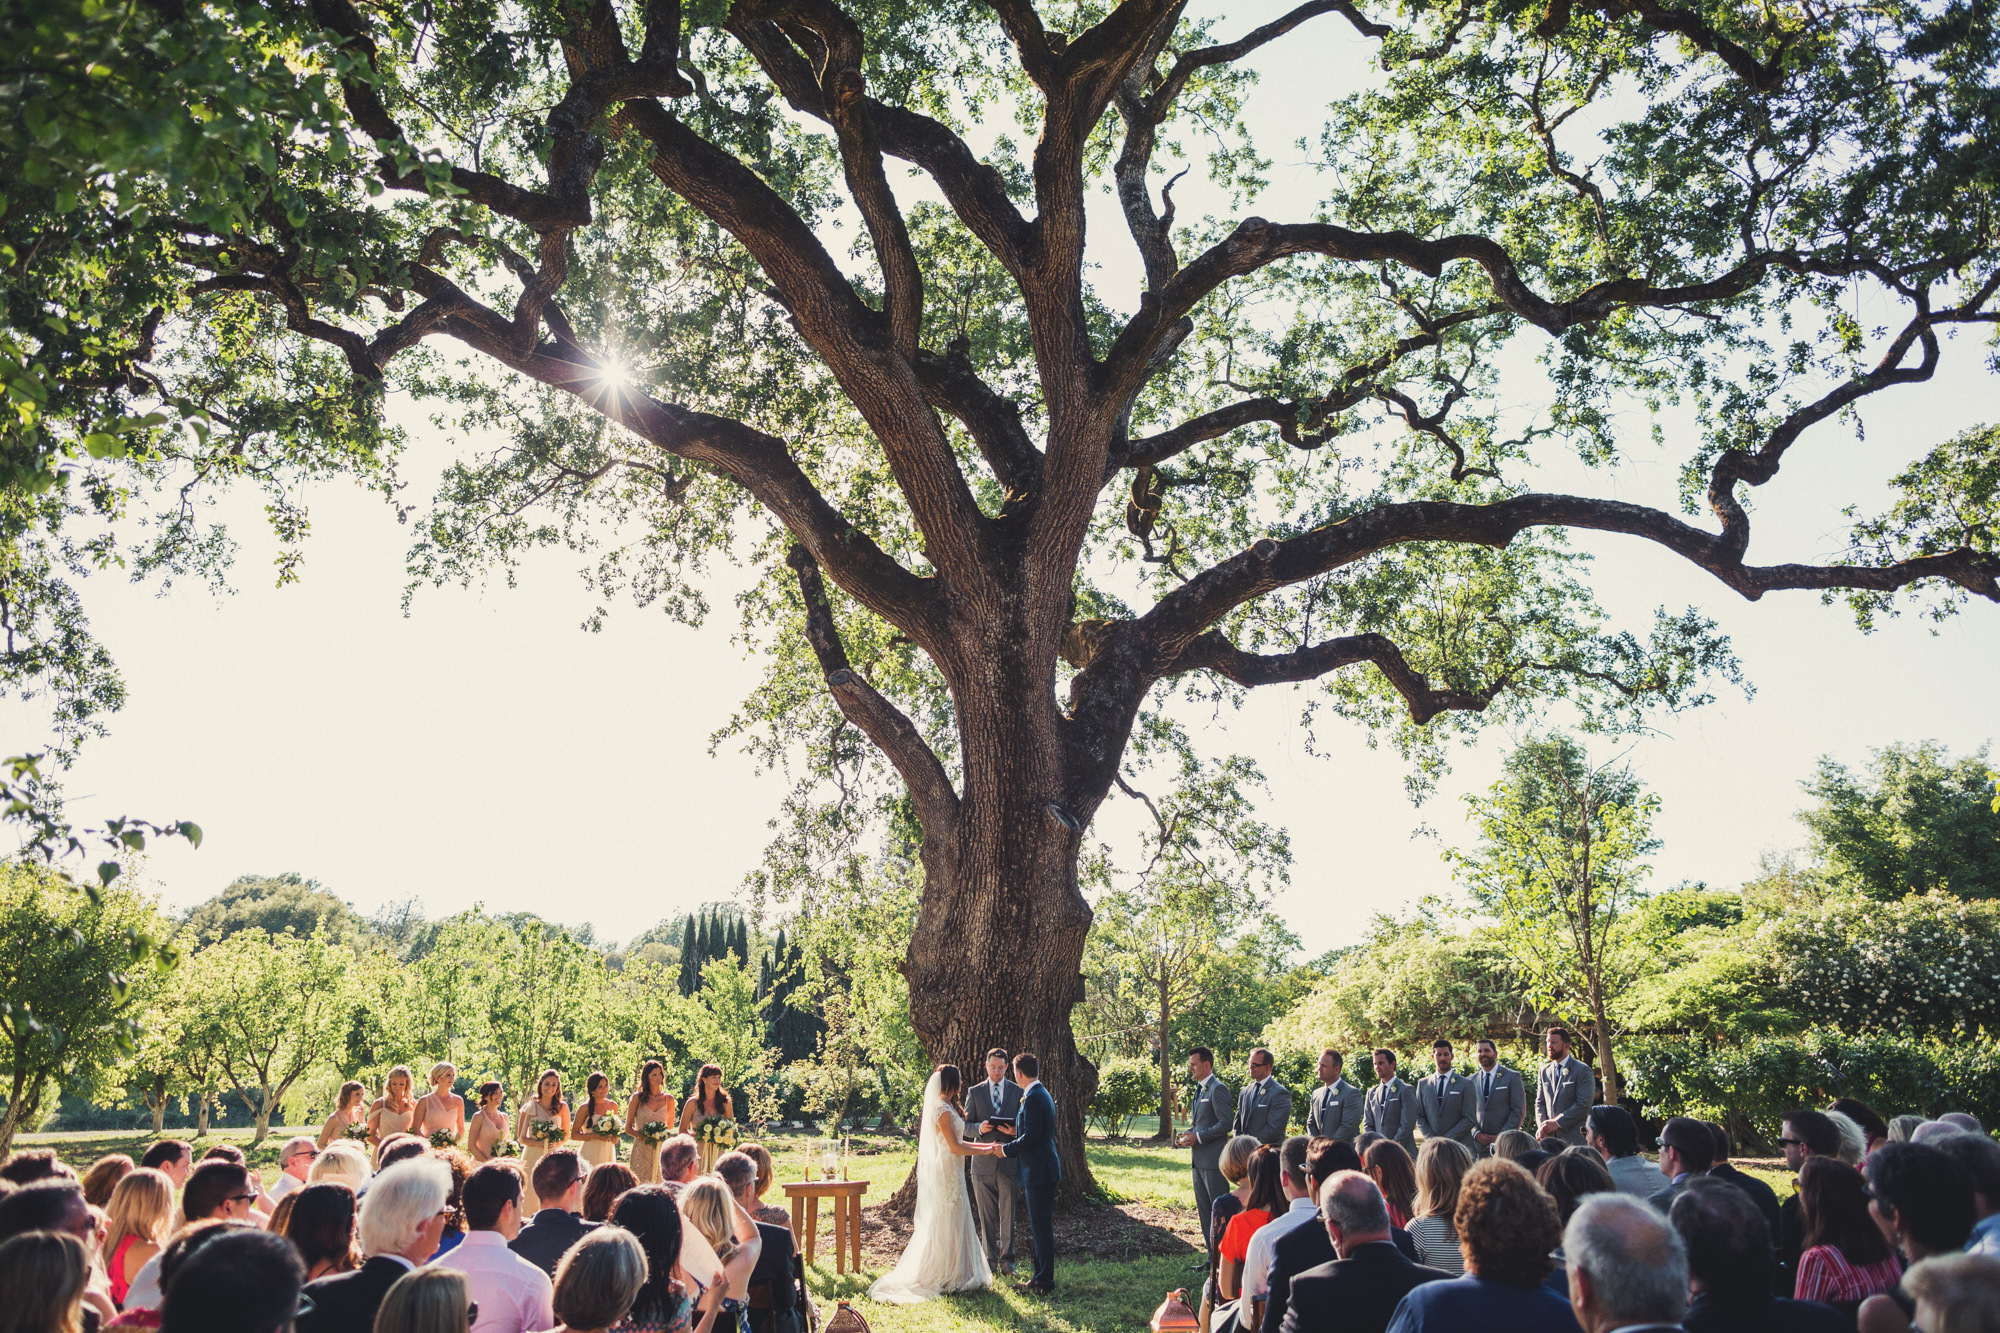 Wedding in Campovida @Anne-Claire Brun 61